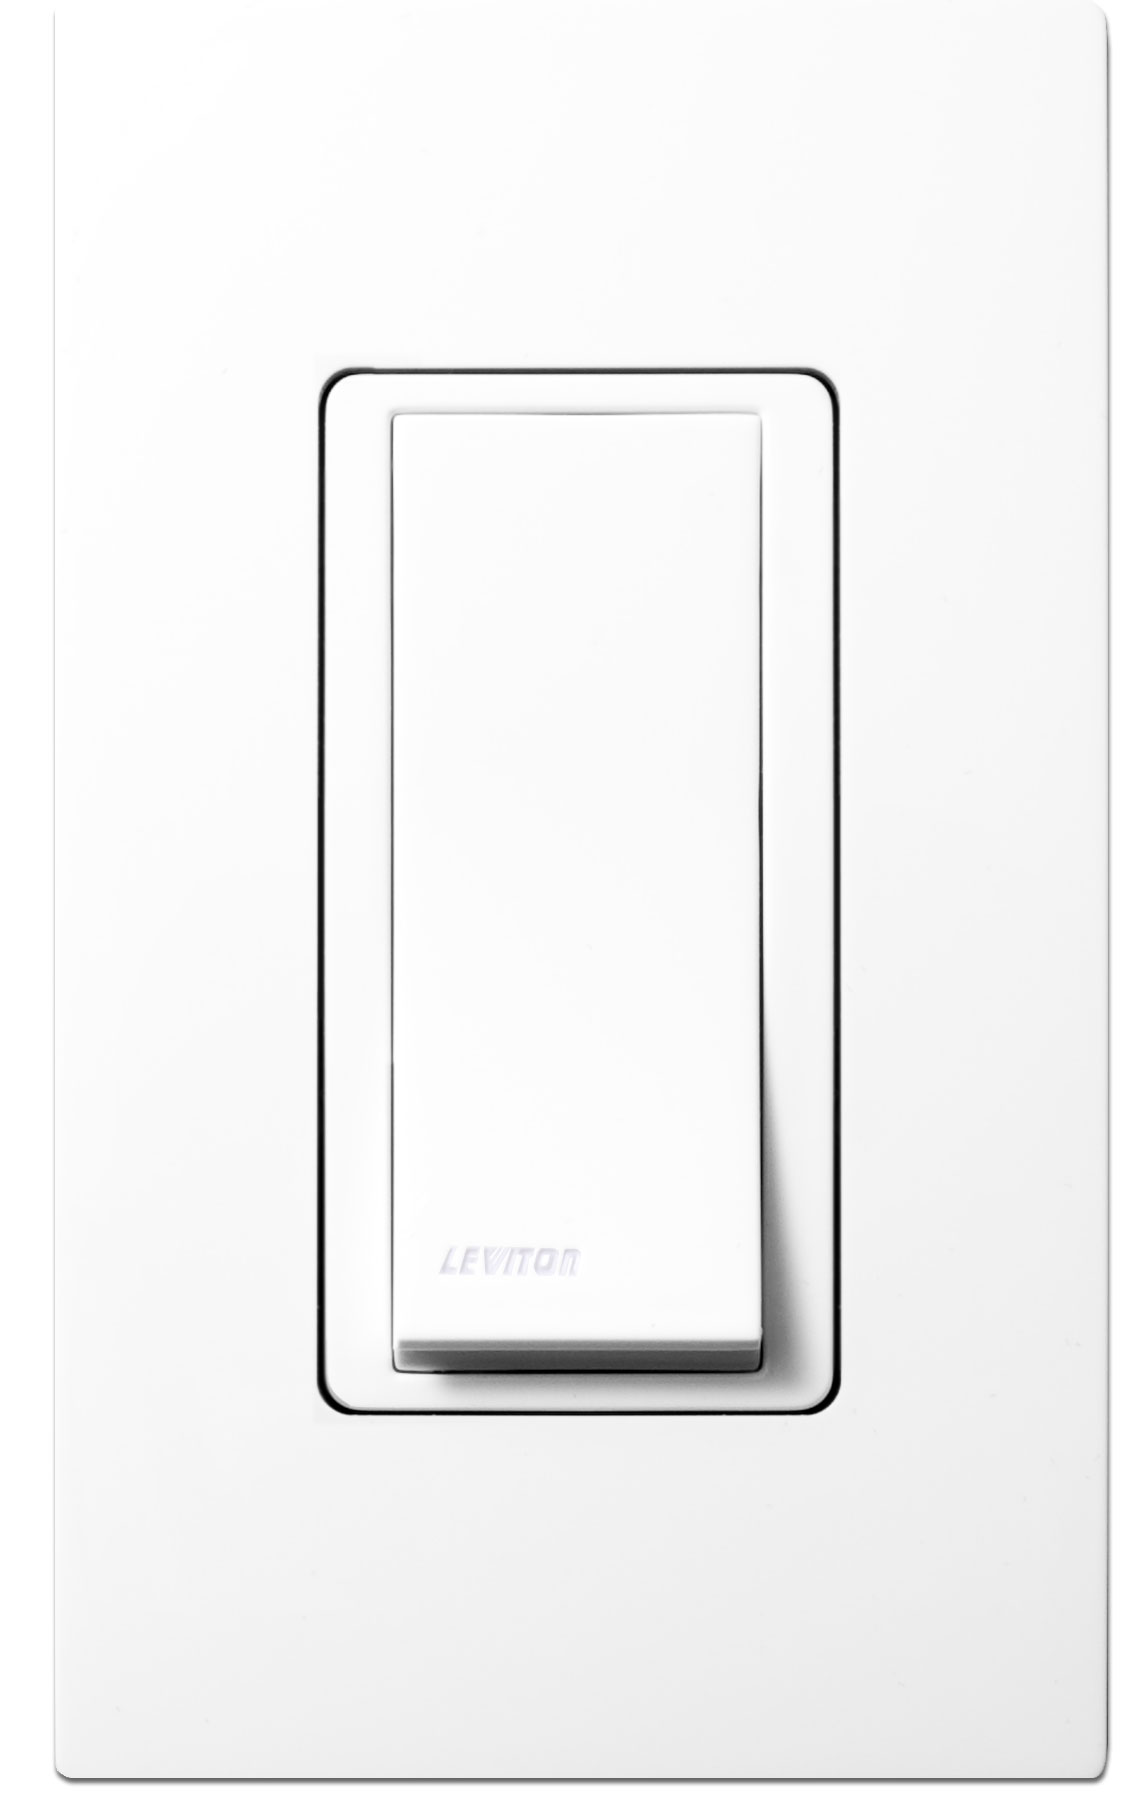 Self Switched Wall Lights : Leviton WSS0S-P0W Wireless Self-Powered Remote Switch, White - Wall Light Switches - Amazon.com